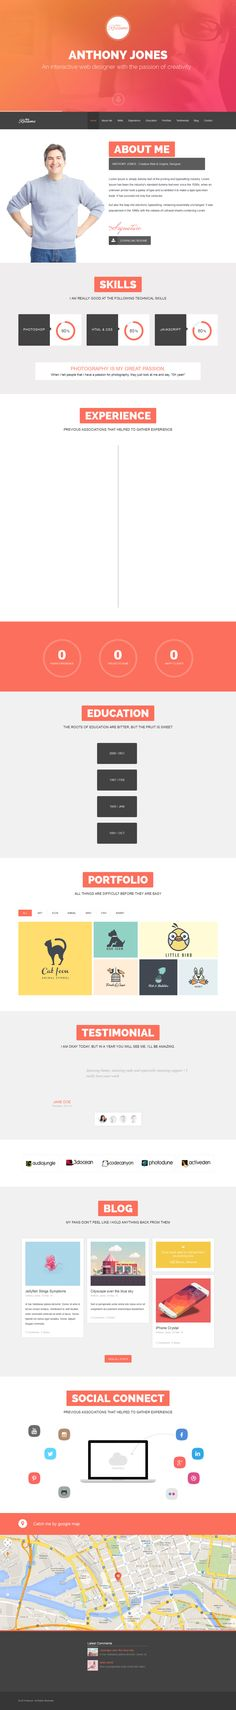 54 best CV originaux / Uncommon graphic resumes images on Pinterest ...